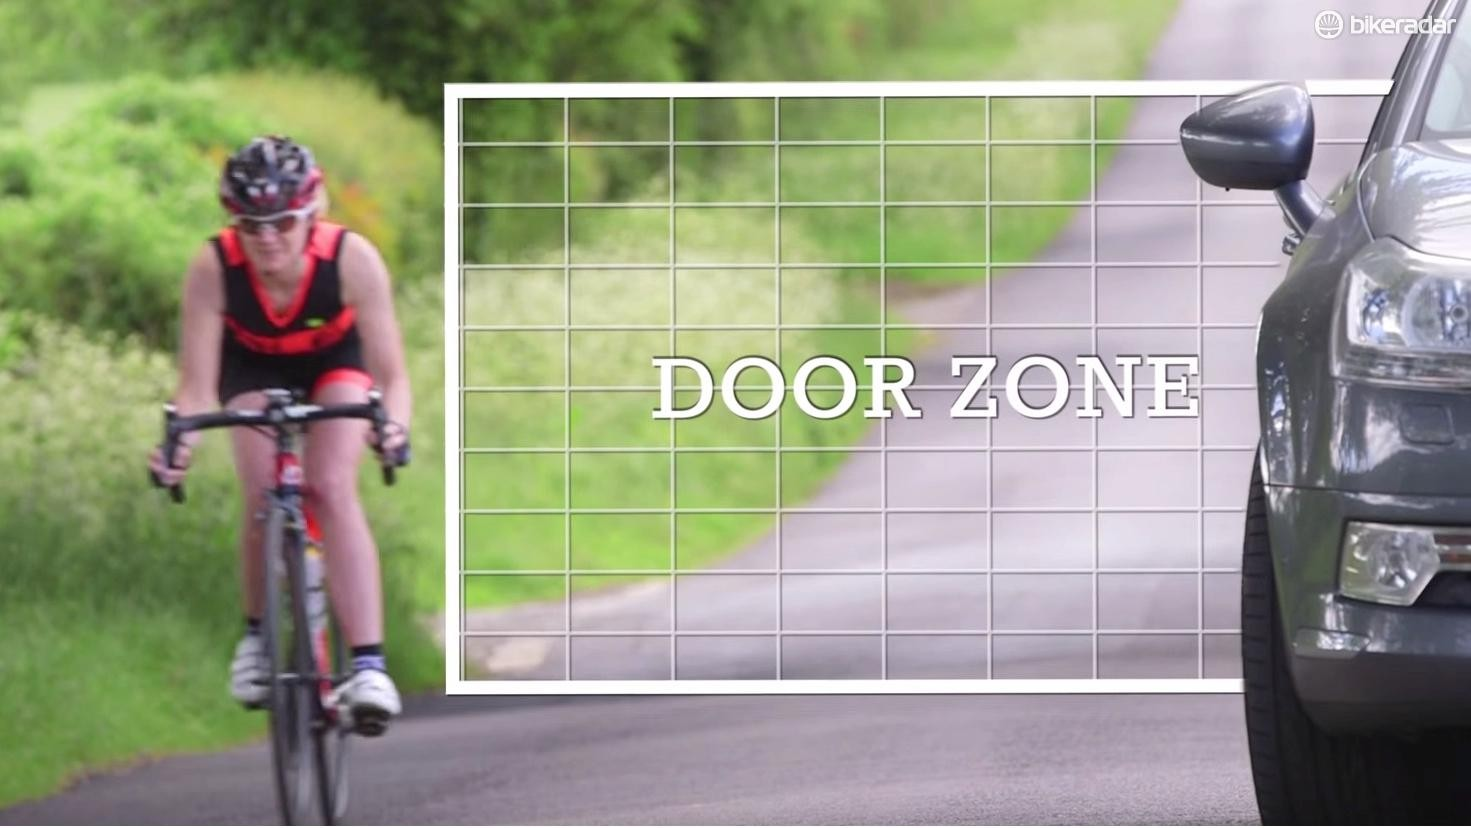 Be vigilant for potential hazards – the door zone is a big one